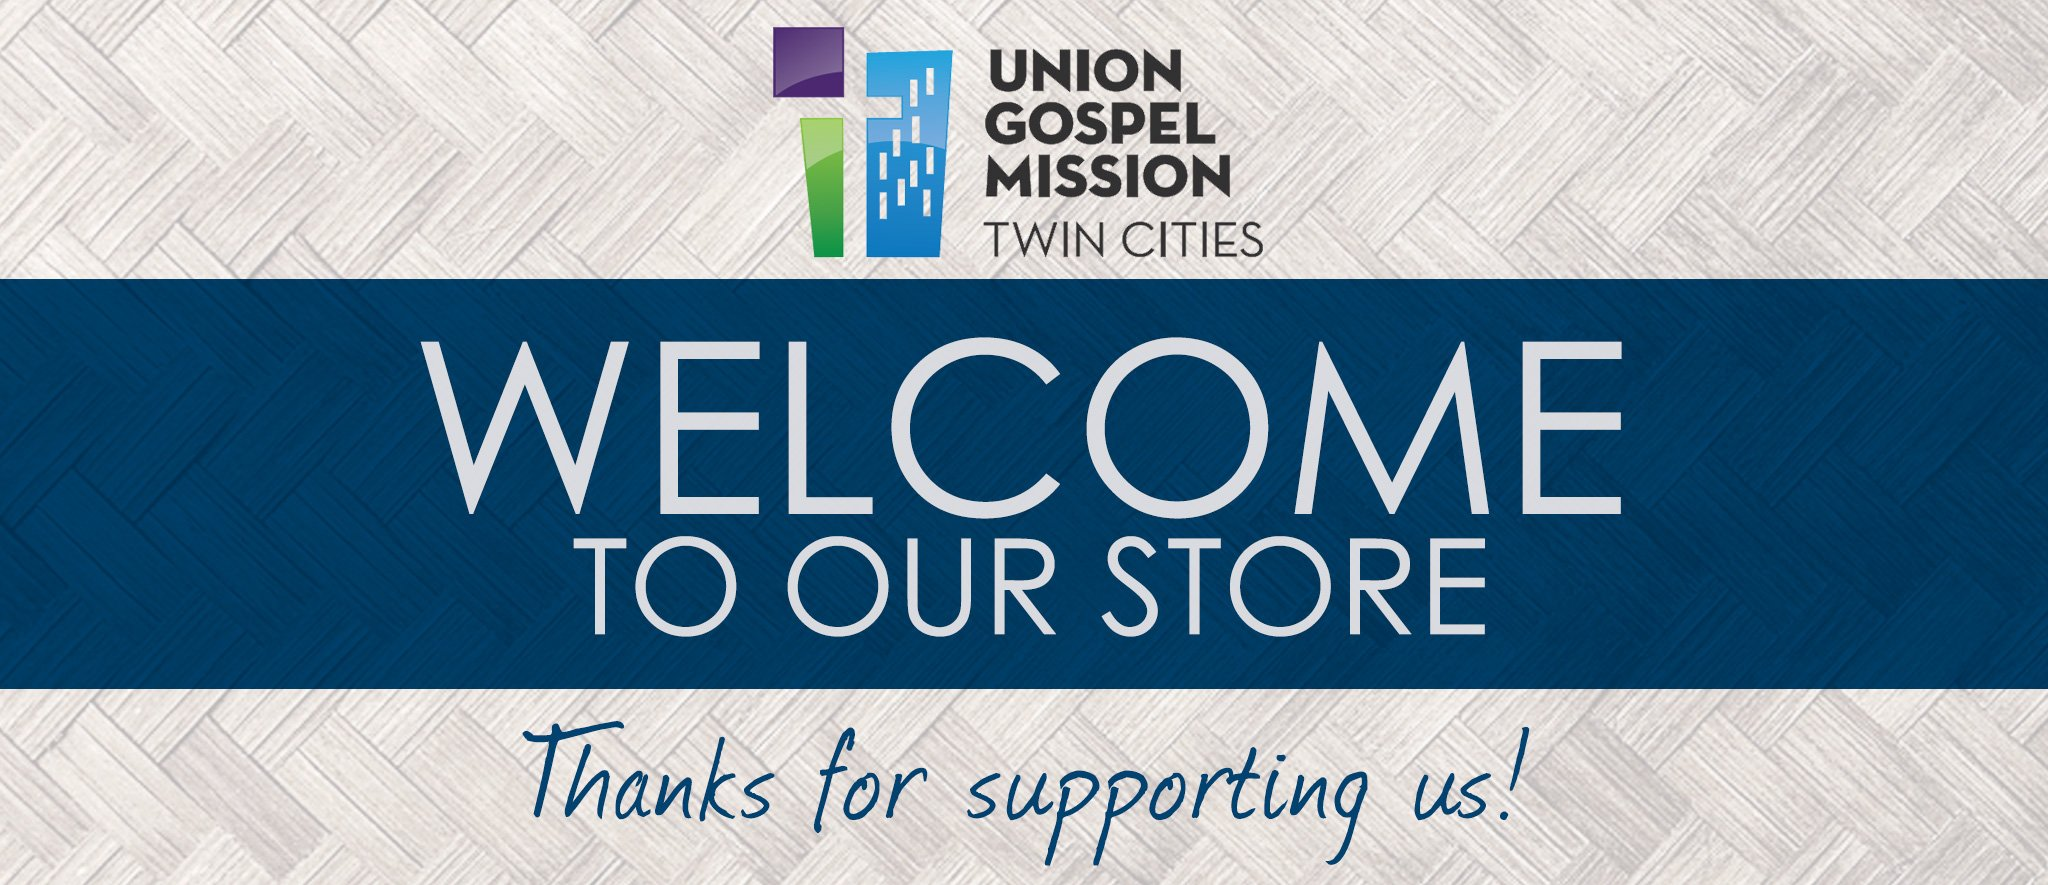 Welcome to Union Gospel Mission